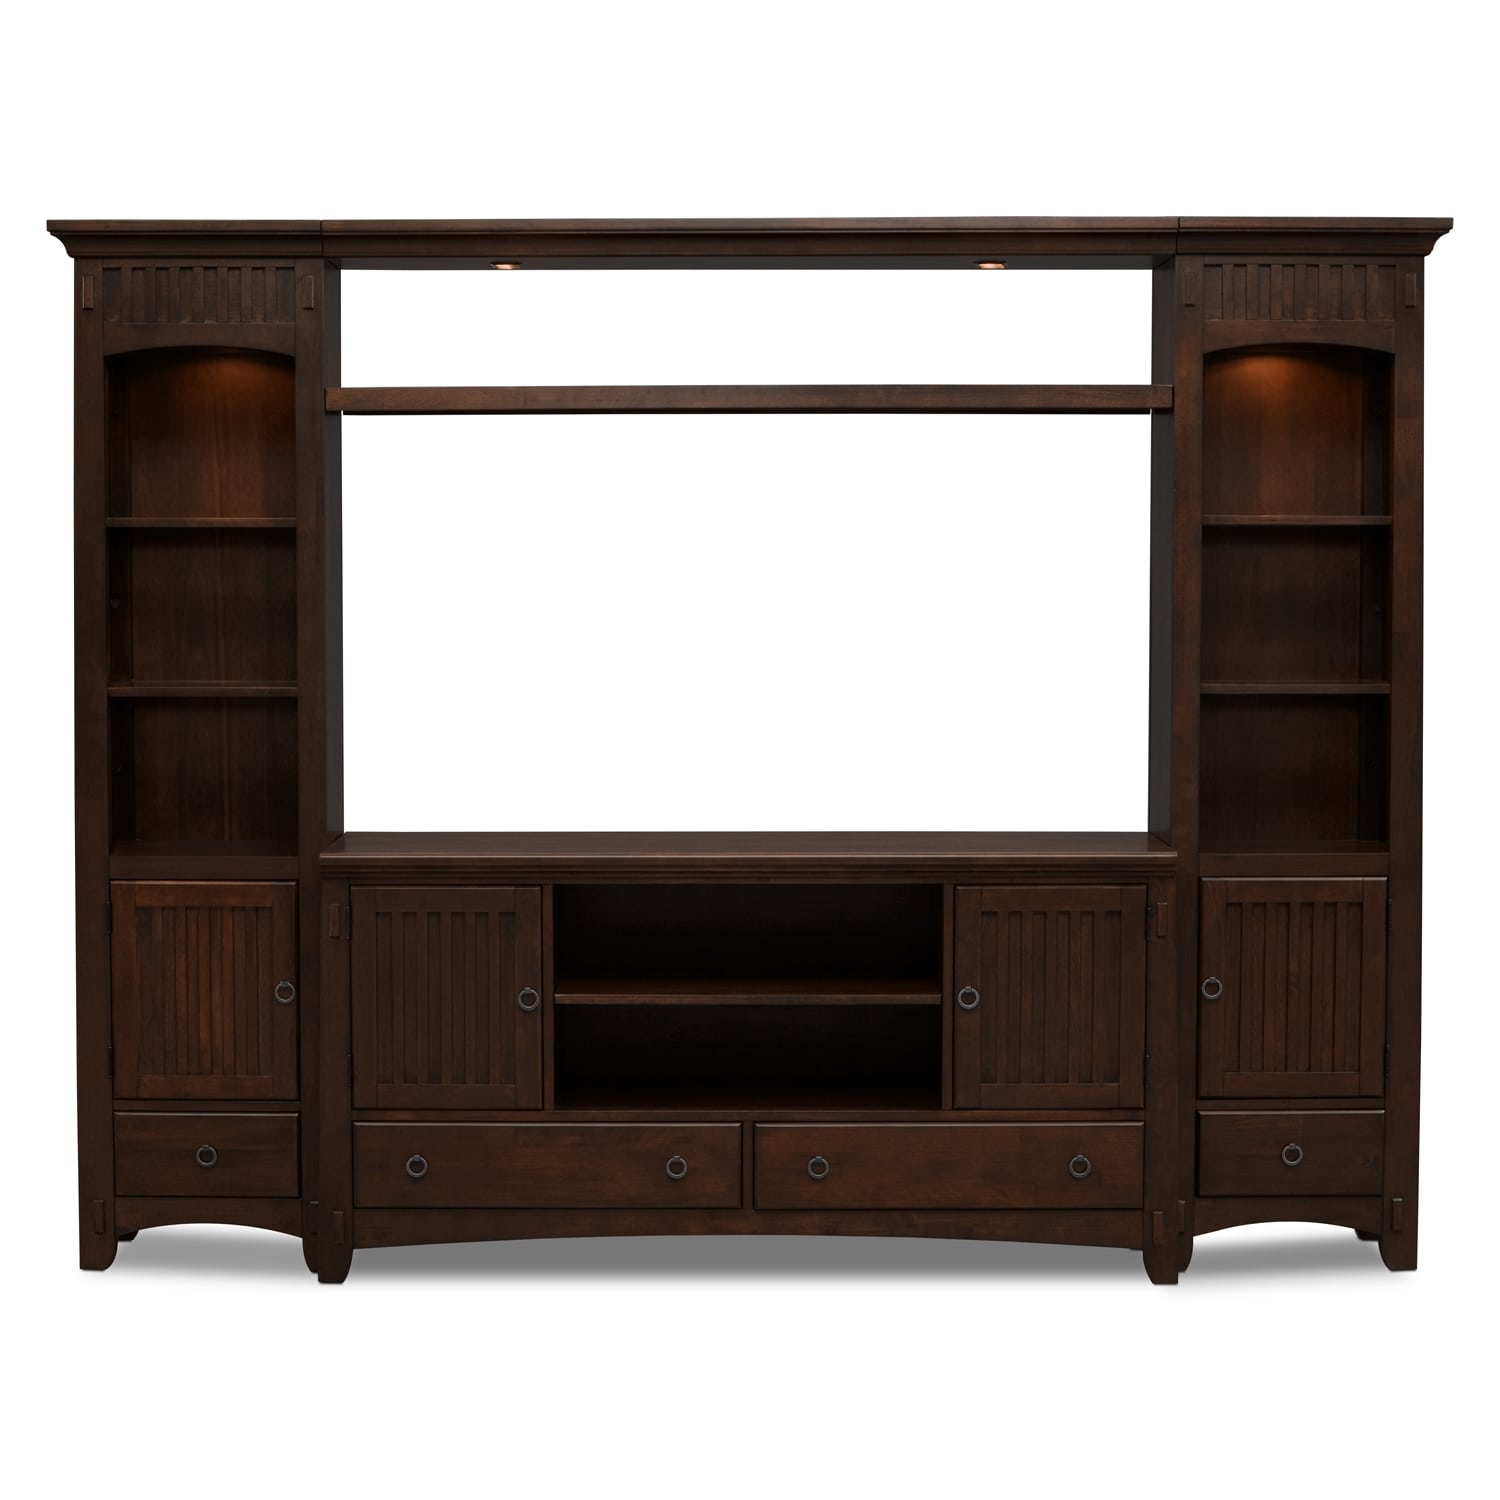 Arts crafts dark ii 4 pc entertainment wall unit Wall unit furniture